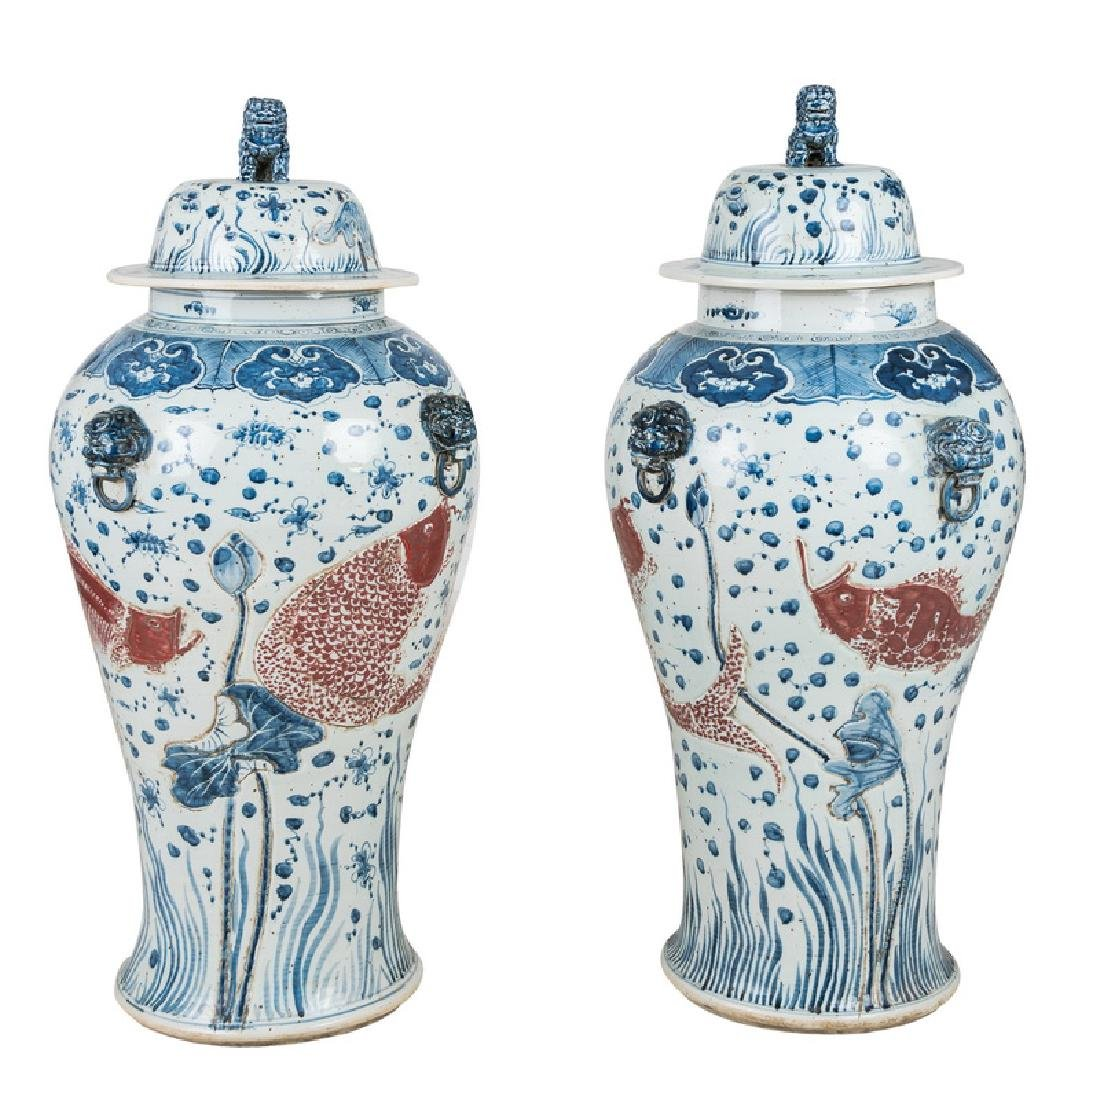 PAIR OF MONUMENTAL CHINESE BLUE & WHITE TEMPLE URNS